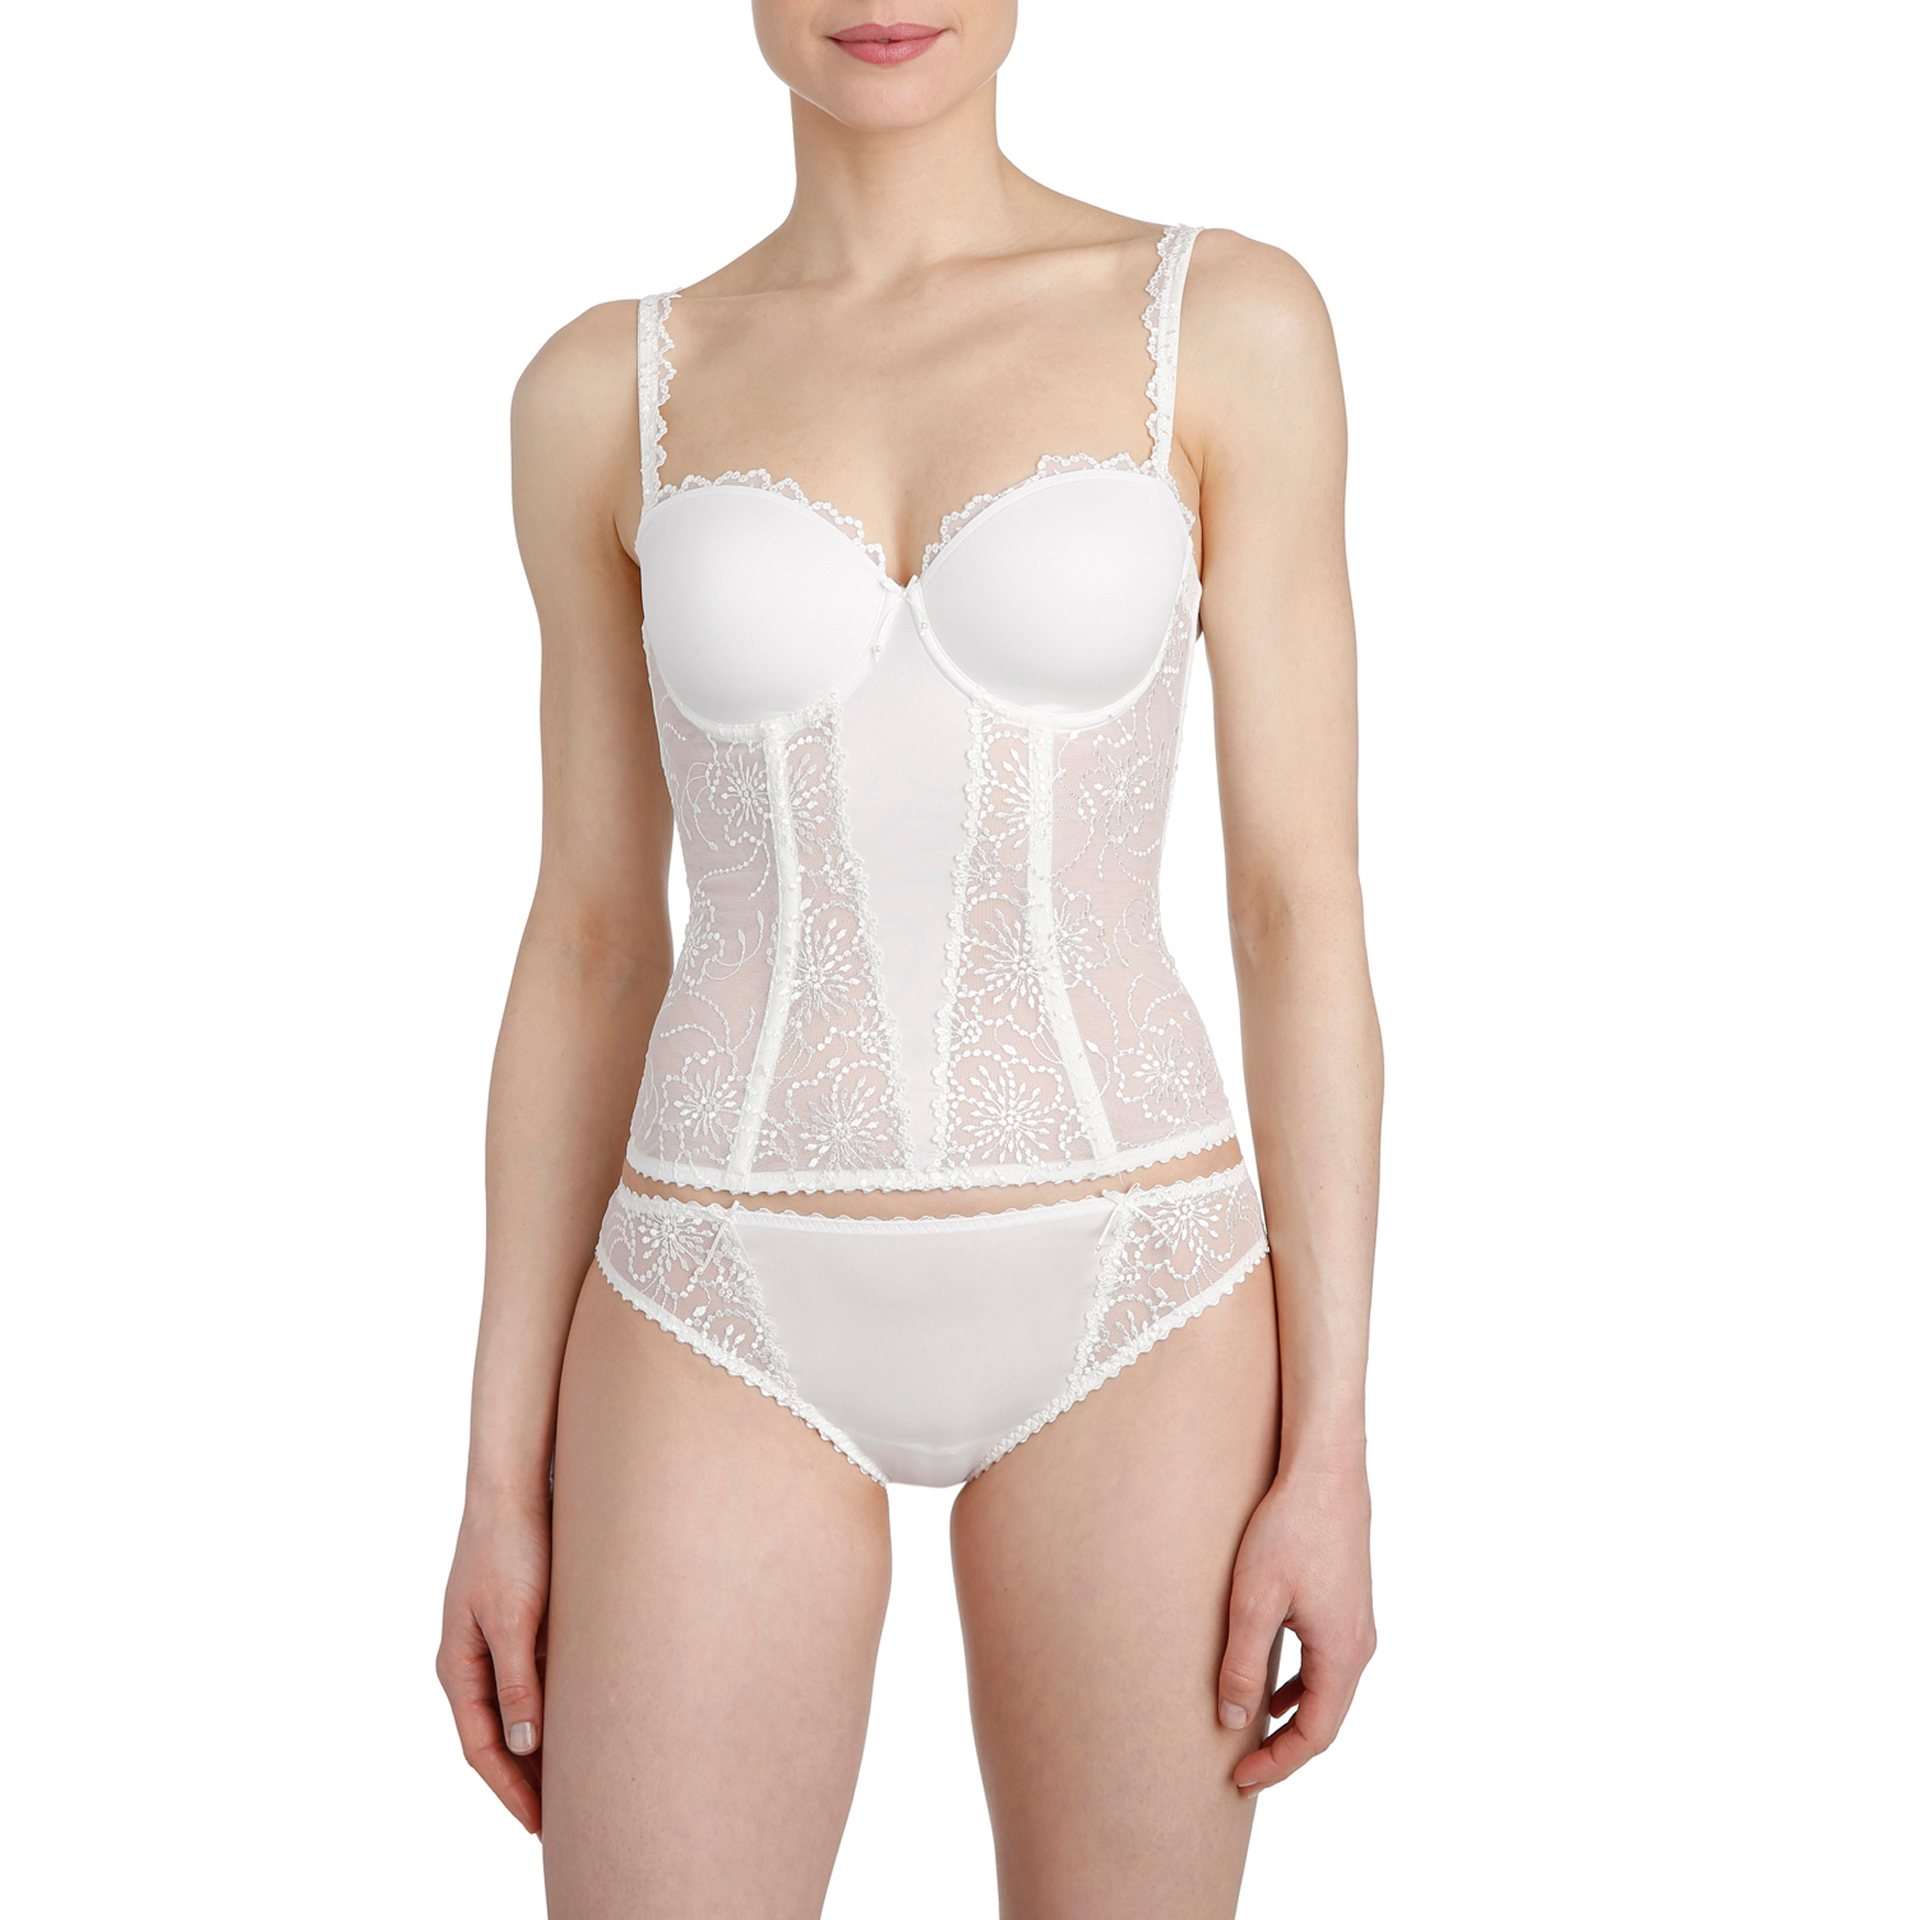 1d52045f03fc8 Shaping Corset by Marie Jo and PrimaDonna online at Rigby   Peller